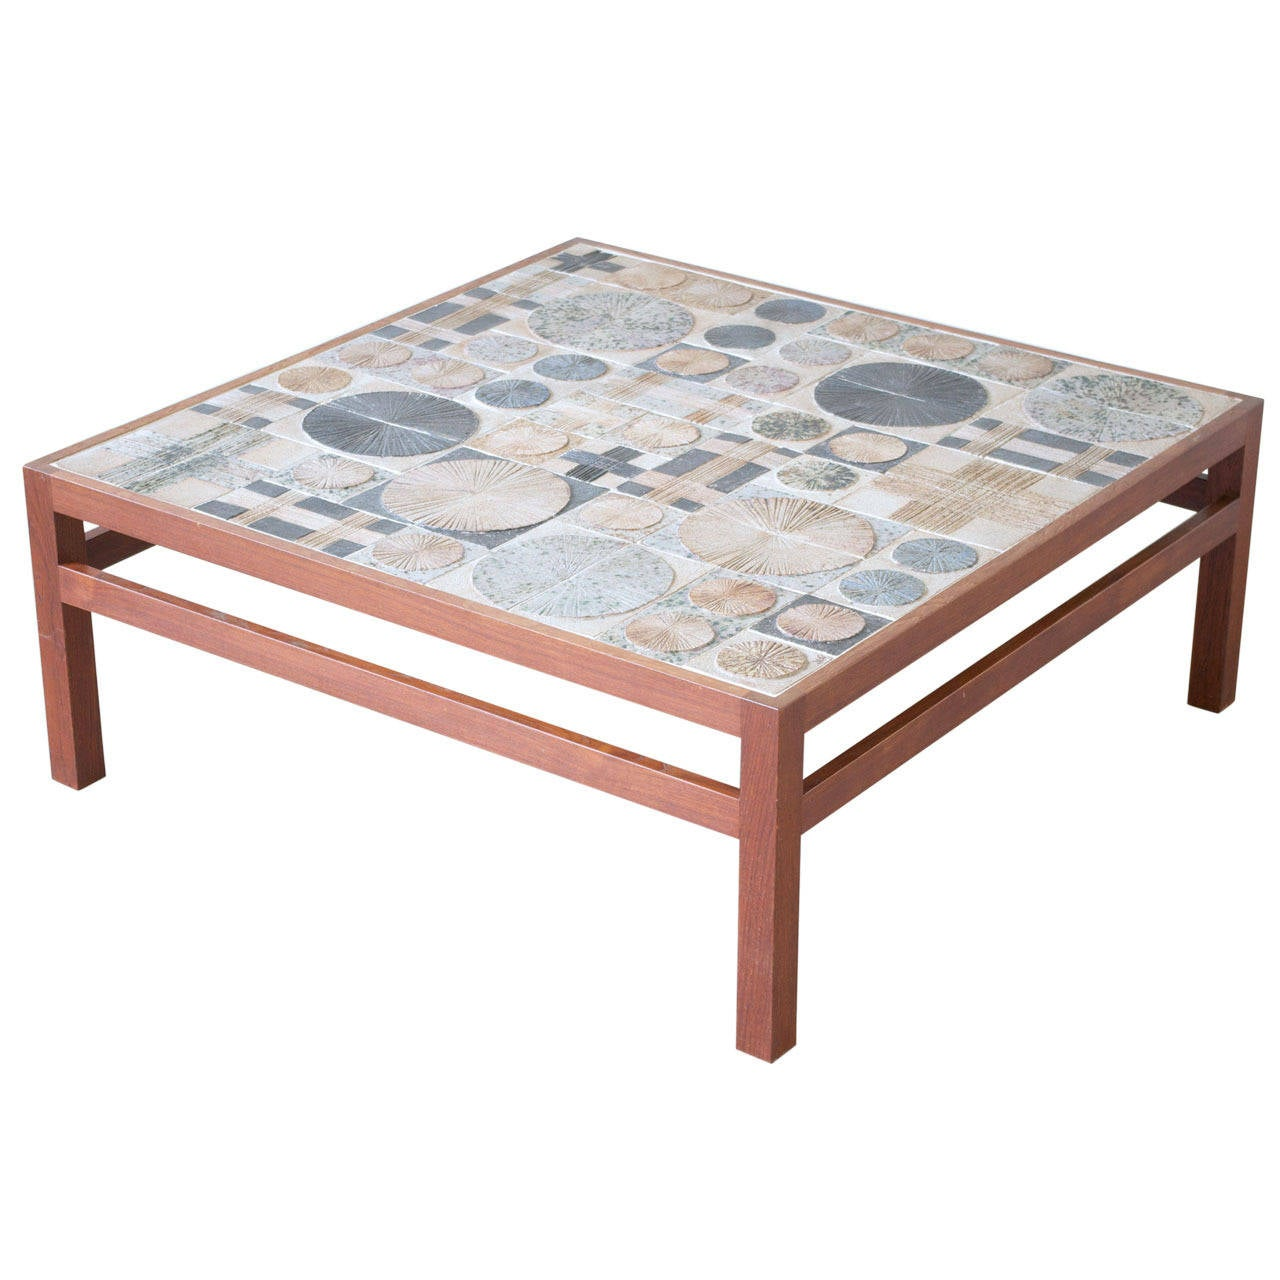 Teak Coffee Table By Willy Beck With Tue Poulsen Tile Top At 1stdibs